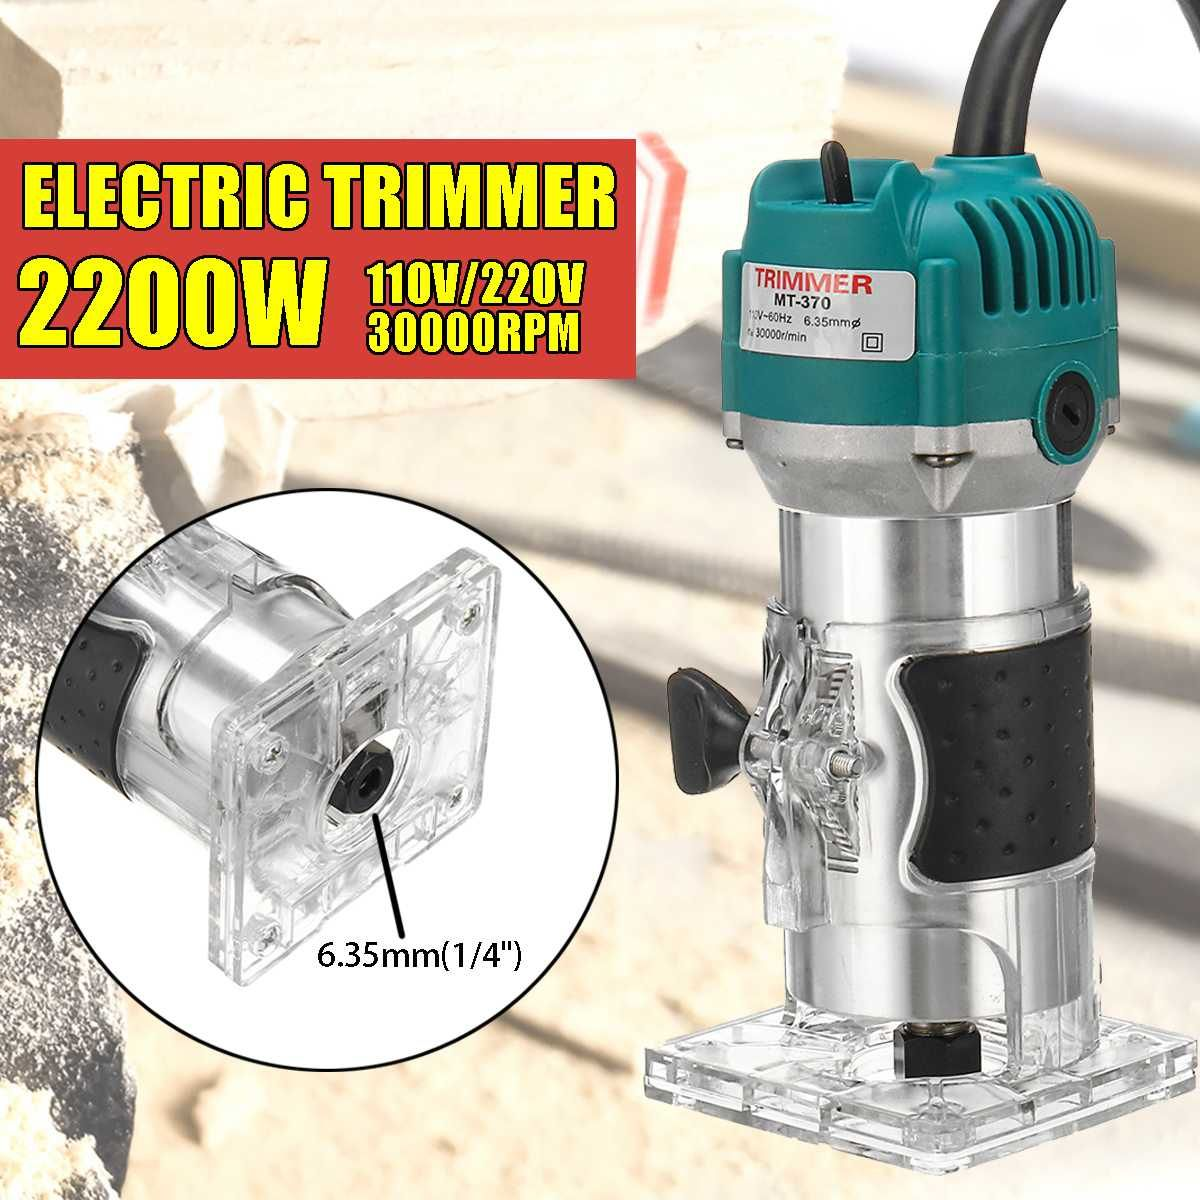 2200 W Elektrische Hand Laminat Rand Trimmer Holz Router 1/4 ''Collet Carving Maschine Zimmerei Holzbearbeitung Power Tools